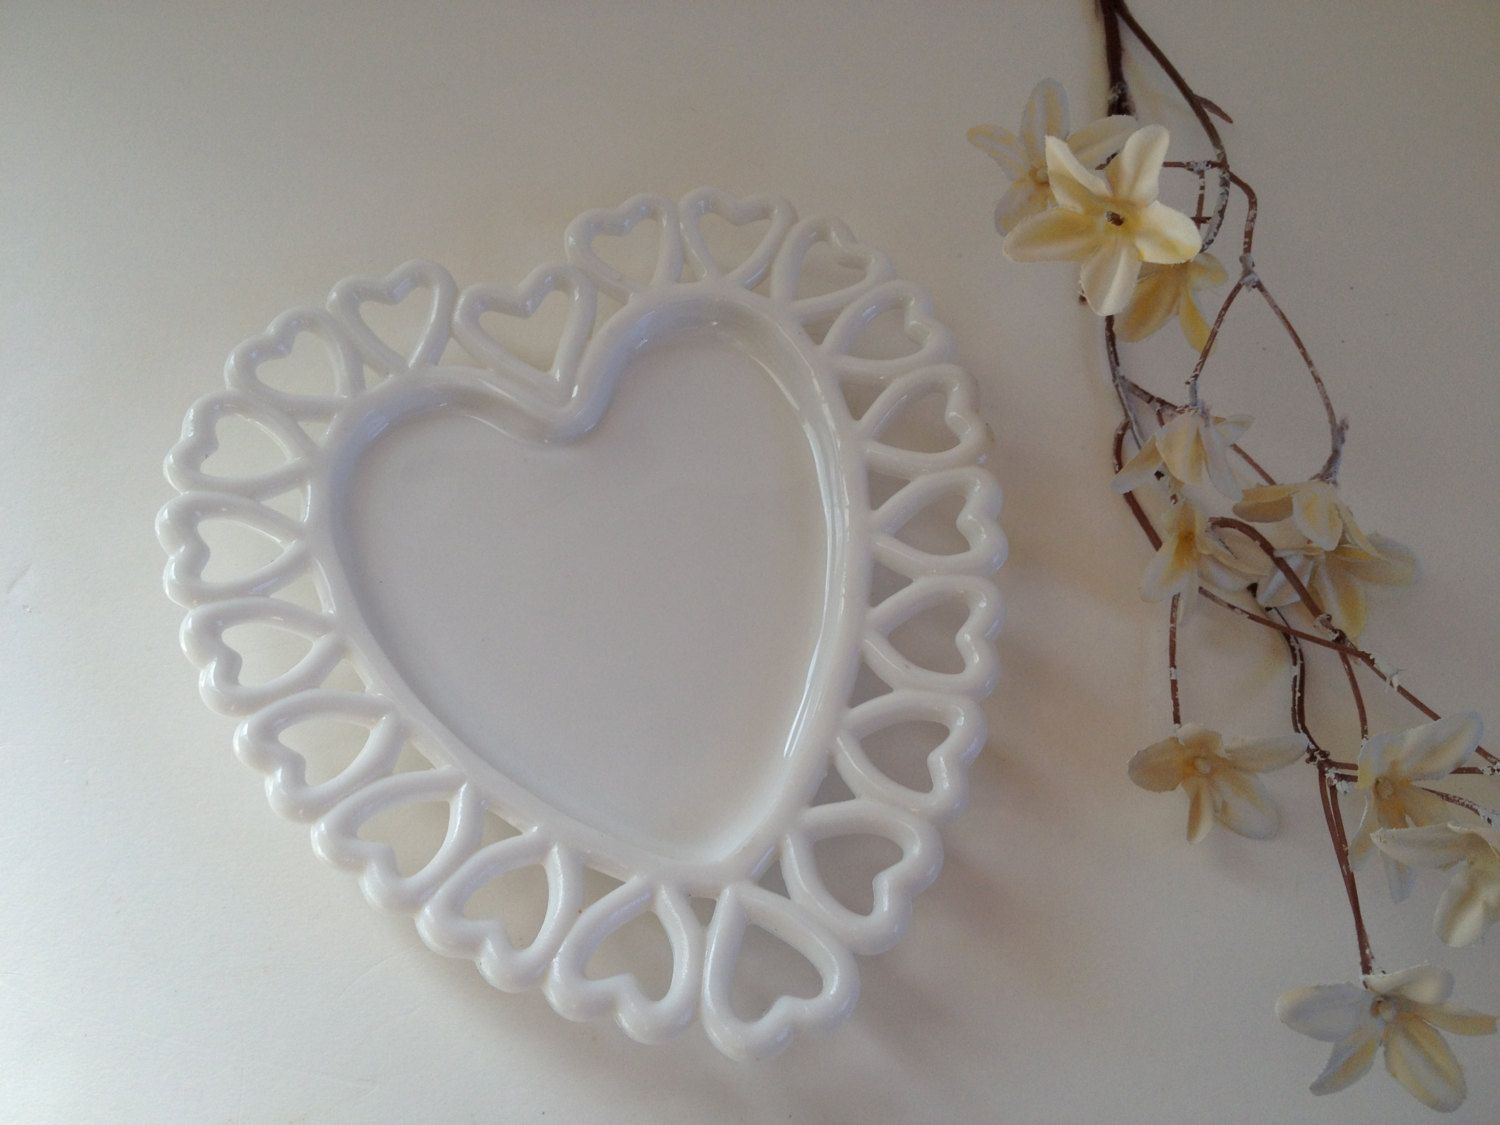 Milk Glass Heart Plate, Westmoreland Sweetheart White Candy Dish Tray  Wedding Decor